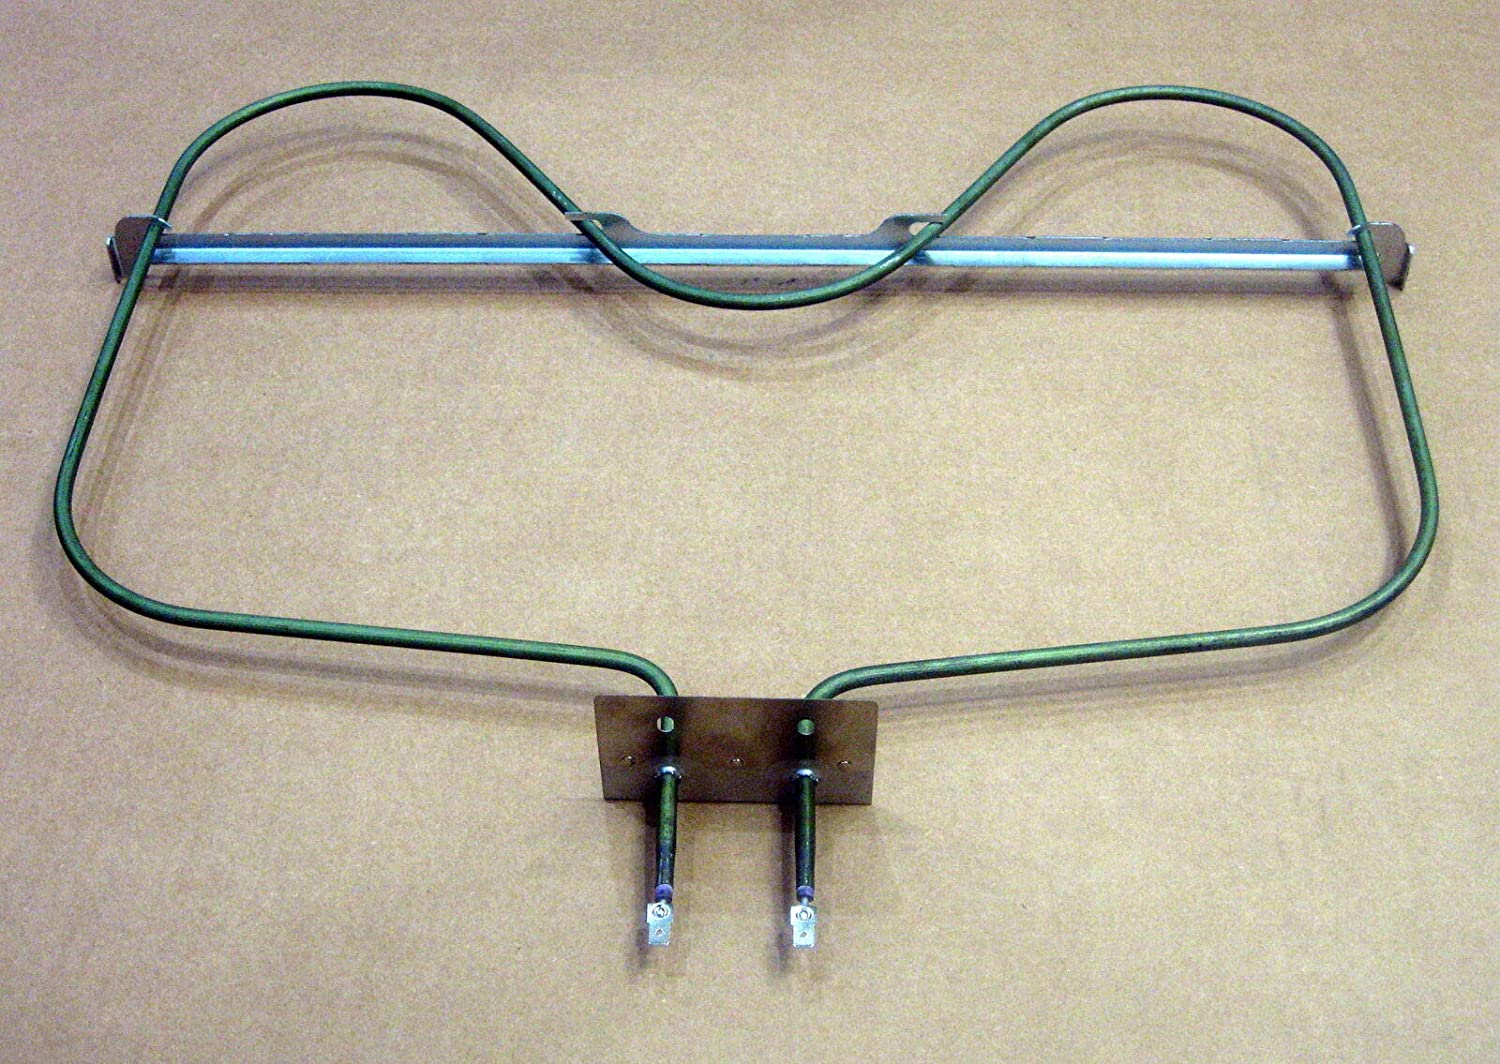 Oven Bake Heating Element W11182108 for Whirlpool Range